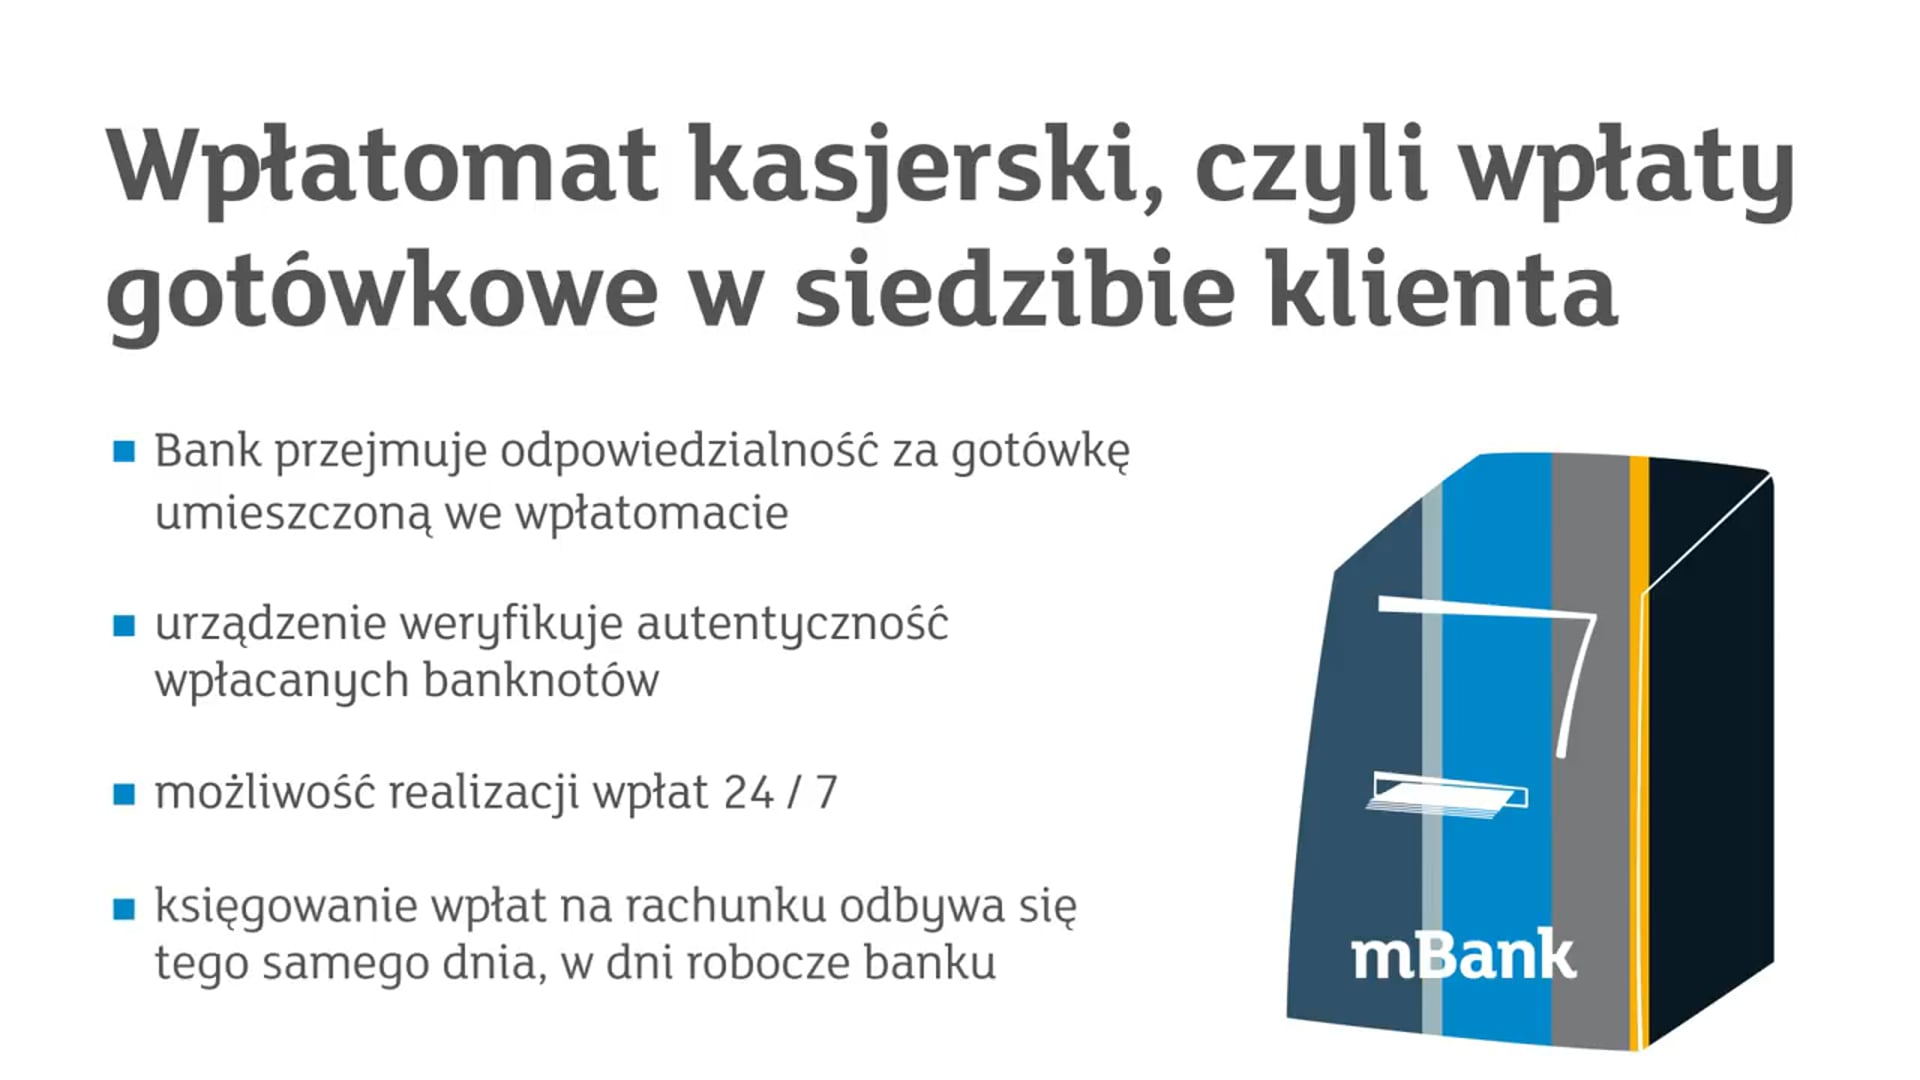 mBank - Polish Voiceover www.voiceover.pl